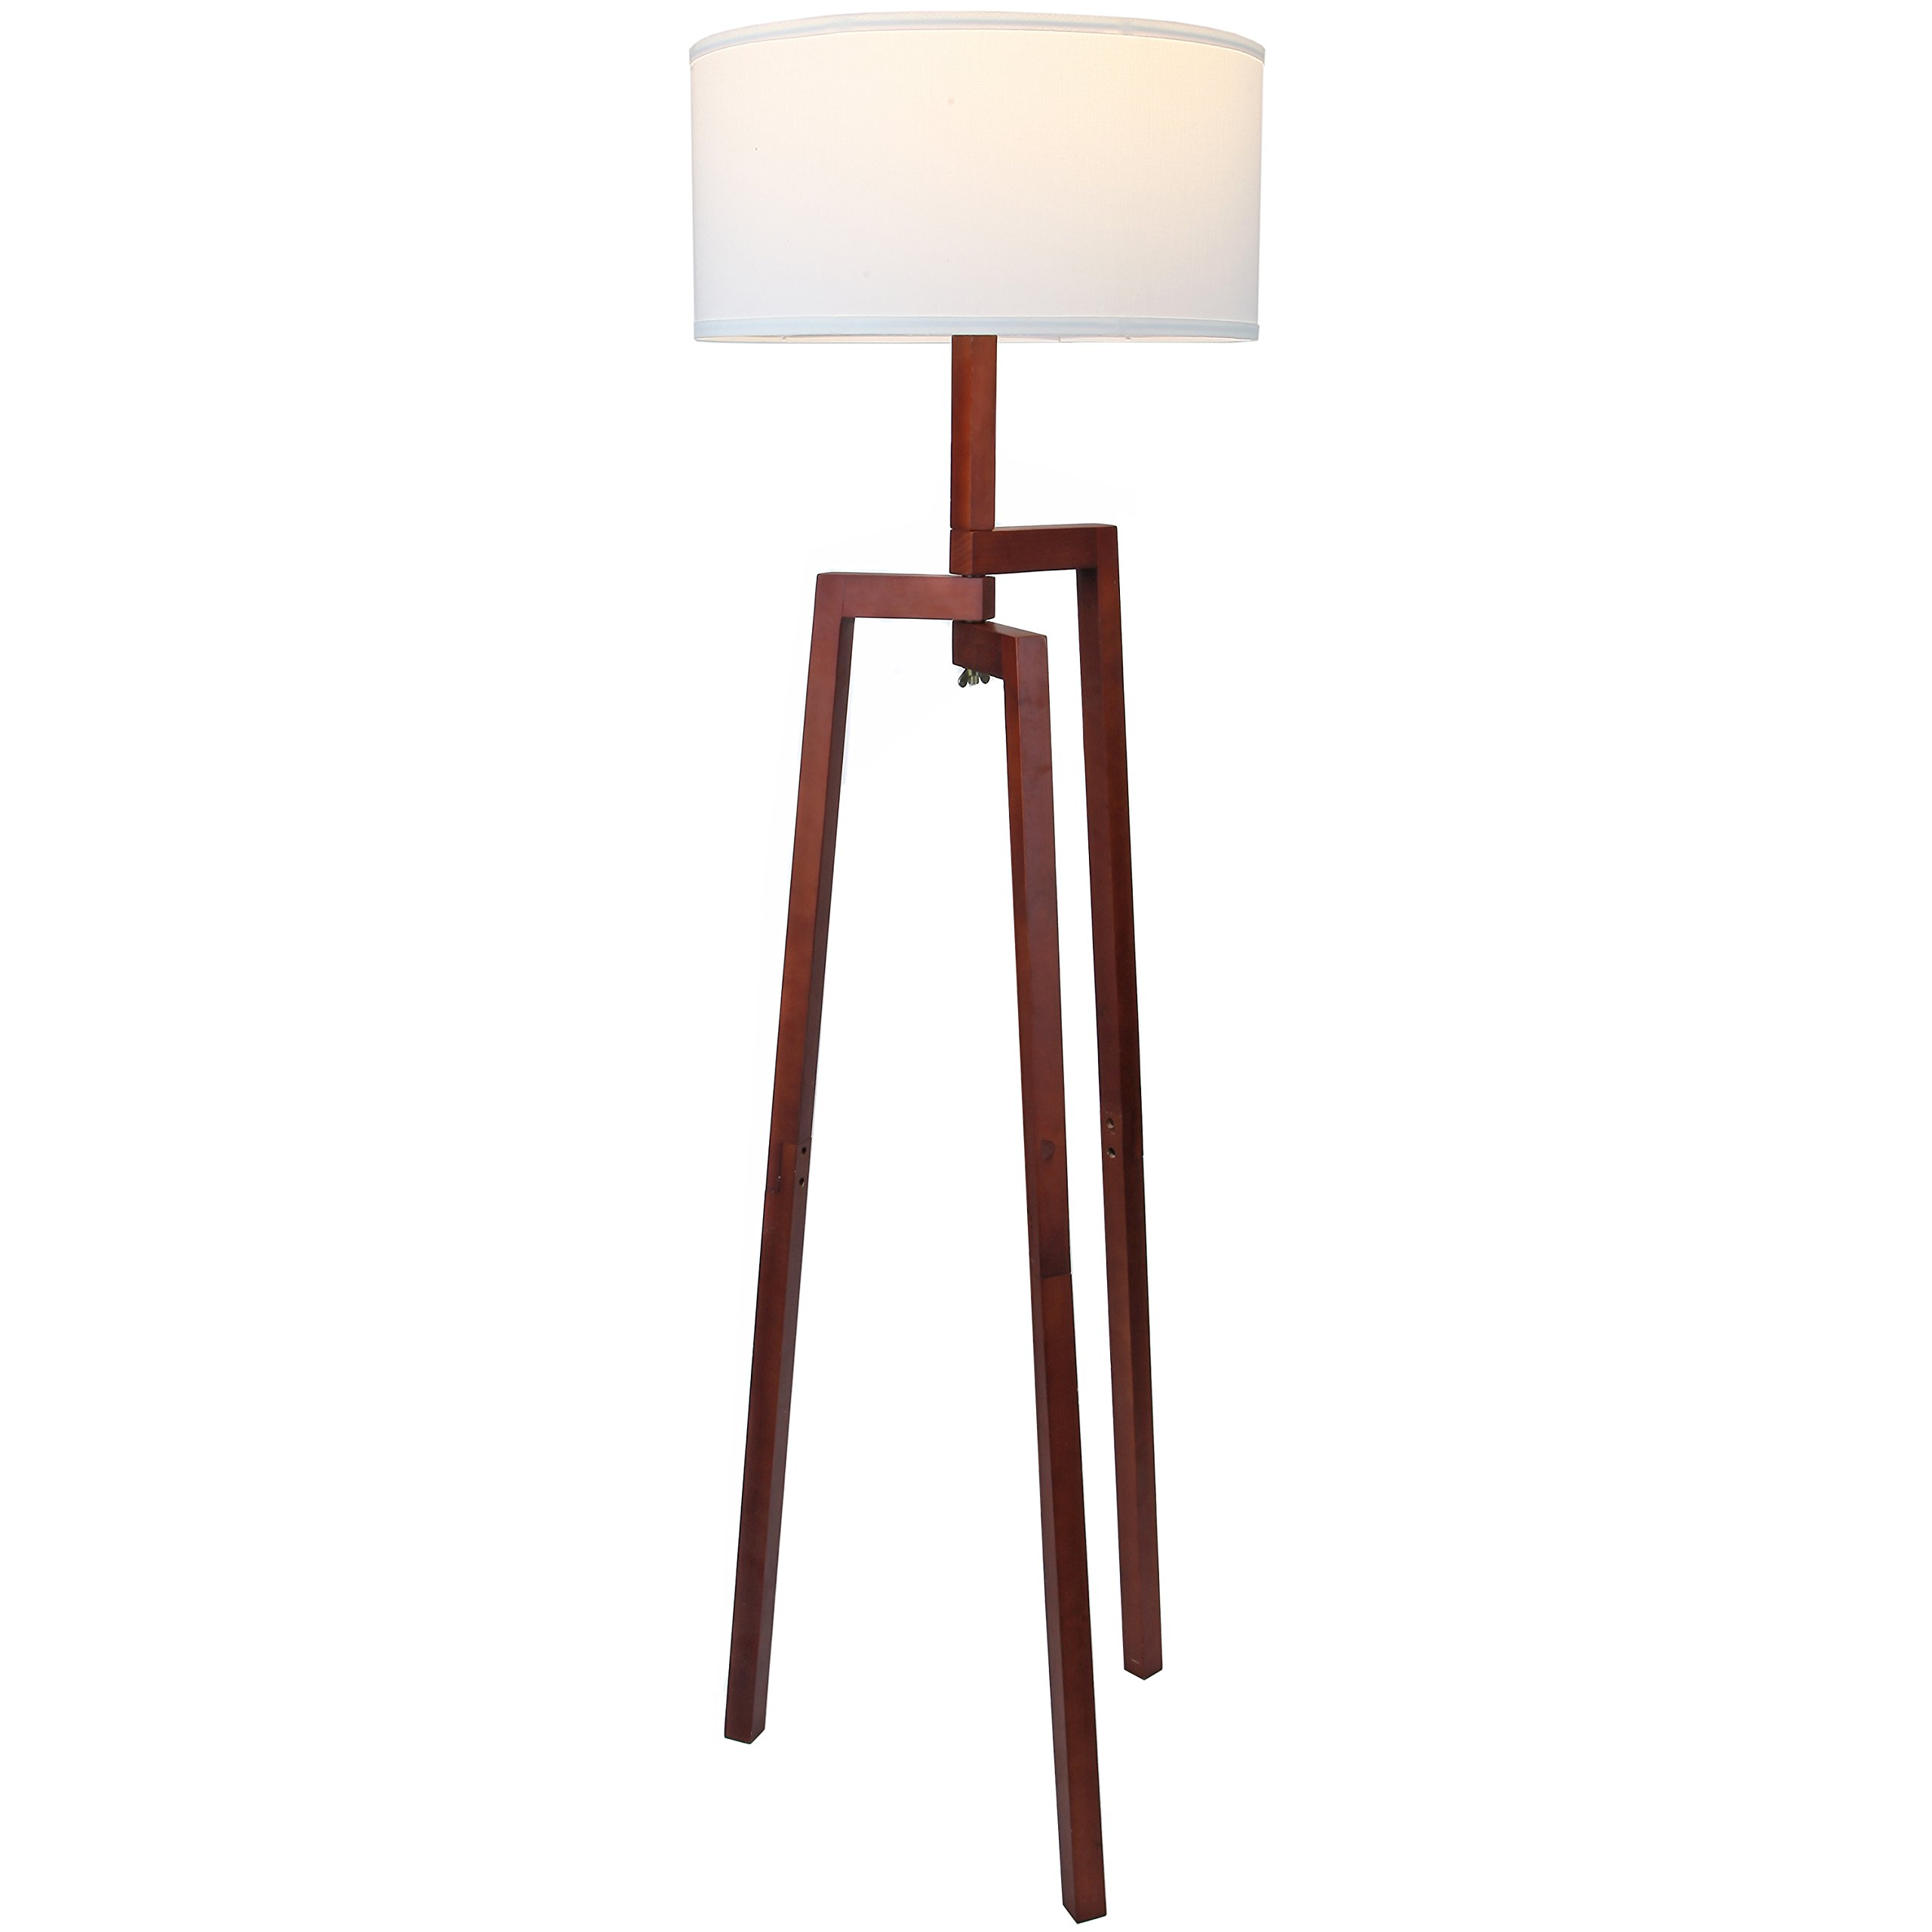 Brightech New Mia LED Tripod Floor Lamp– Modern Design Wood Mid Century Style Lighting for Contemporary Living or Family Rooms- Ambient Light Tall Standing Survey Lamp for Bedroom, Of - Havana Brown